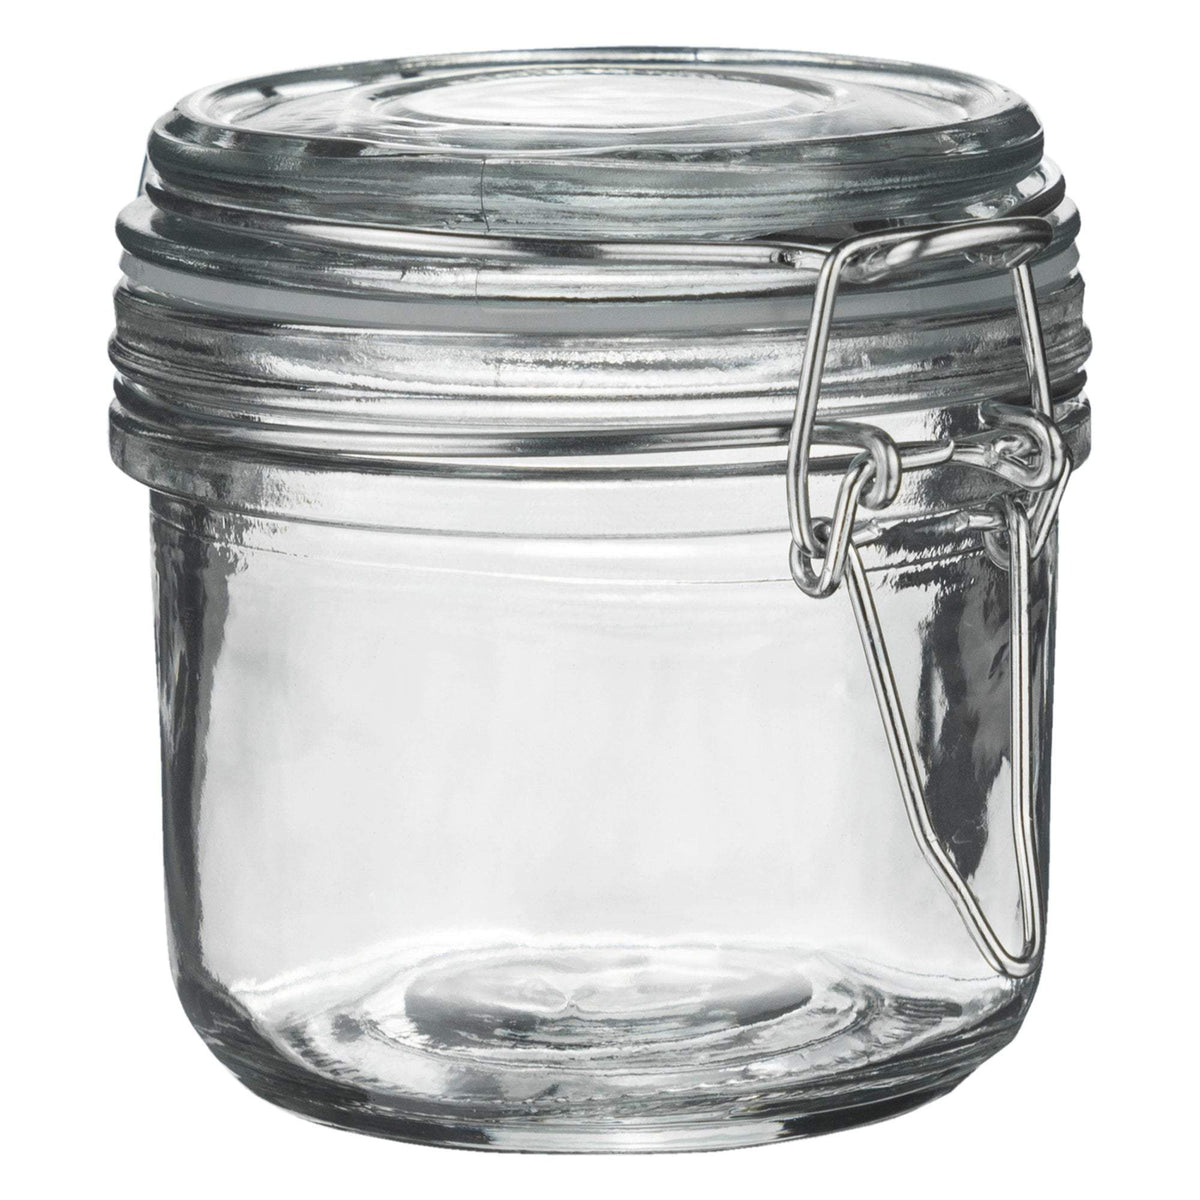 Argon Tableware Glass Storage Jar - 200ml - Clear Seal